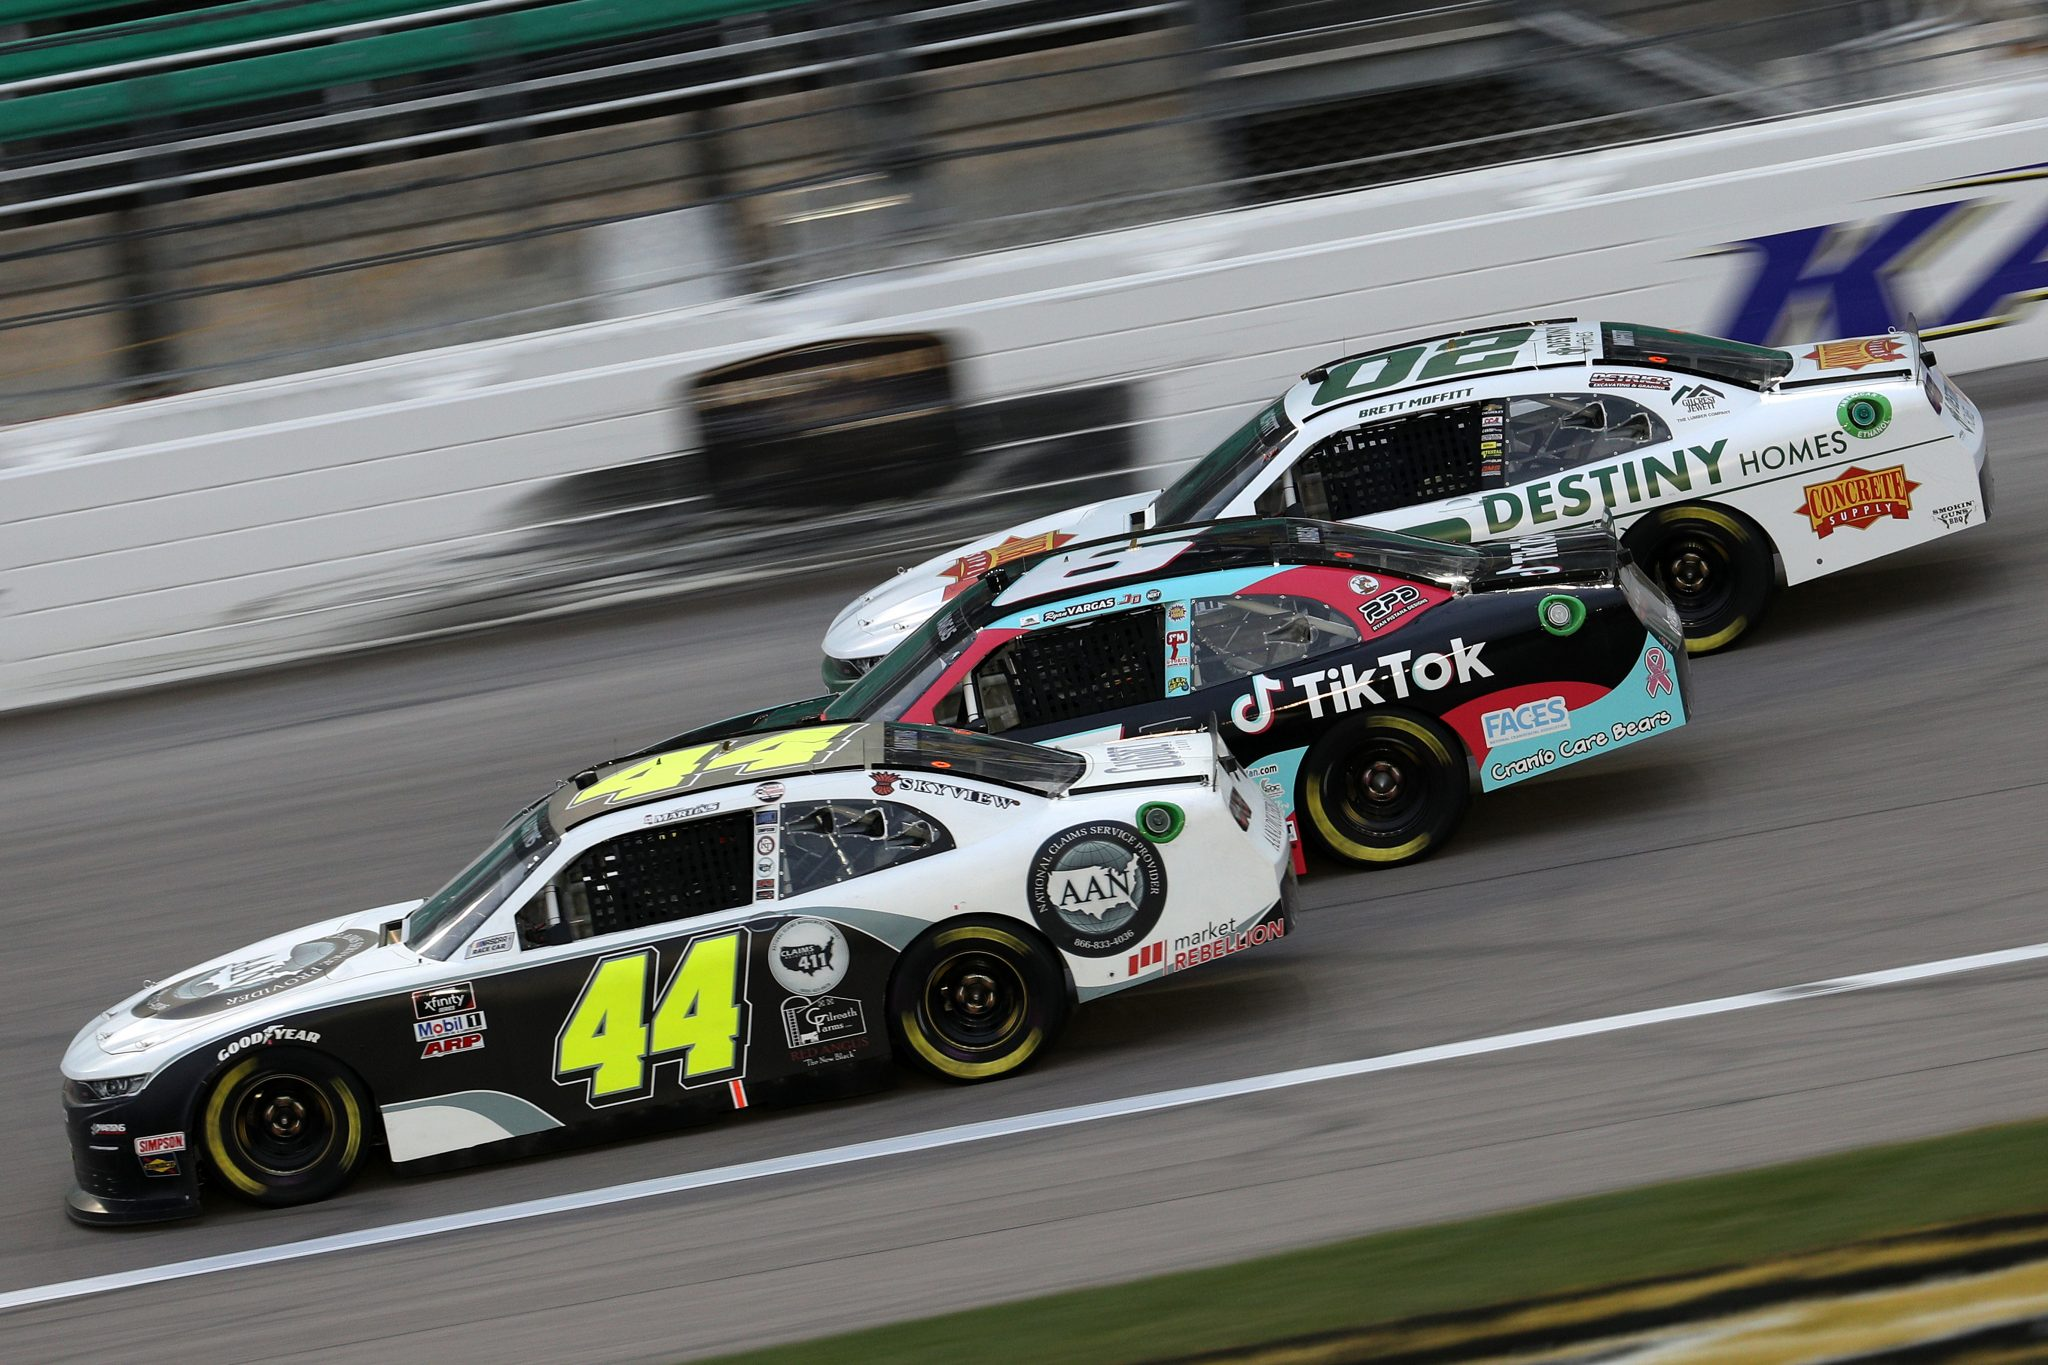 KANSAS CITY, KANSAS - OCTOBER 17: Tommy Joe Martins, driver of the #44 AAN Adjusters Chevrolet, Ryan Vargas, driver of the #6 TikTok Chevrolet, and Brett Moffitt, driver of the #02 Destiny Homes/Concrete Supply Chevrolet, race during the NASCAR Xfinity Series Kansas Lottery 300 at Kansas Speedway on October 17, 2020 in Kansas City, Kansas. (Photo by Chris Graythen/Getty Images) | Getty Images